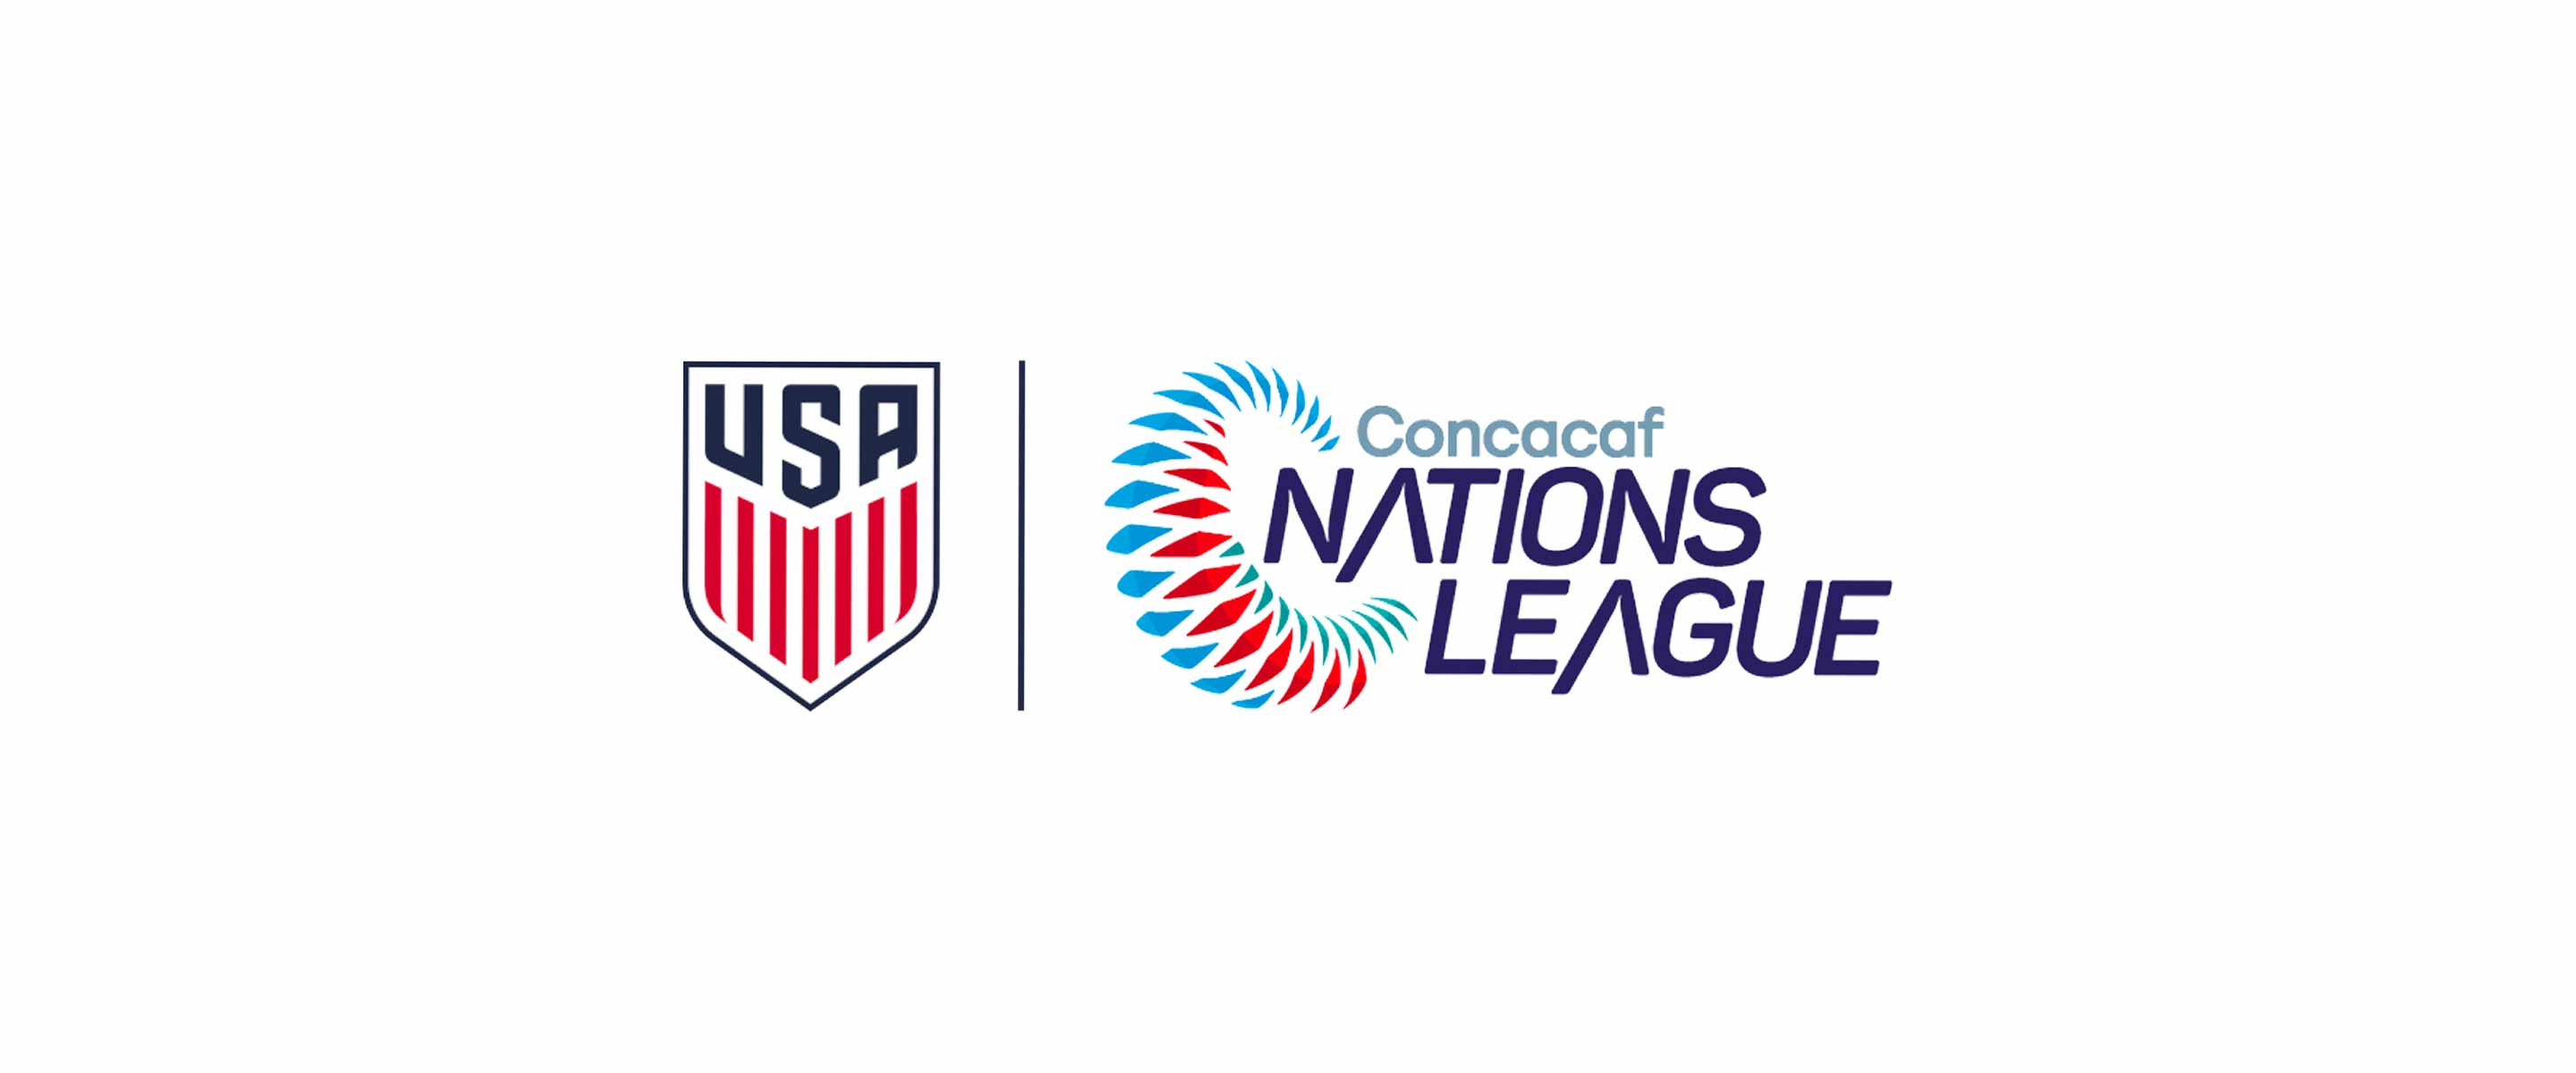 Five Things To Know About The Concacaf Nations League